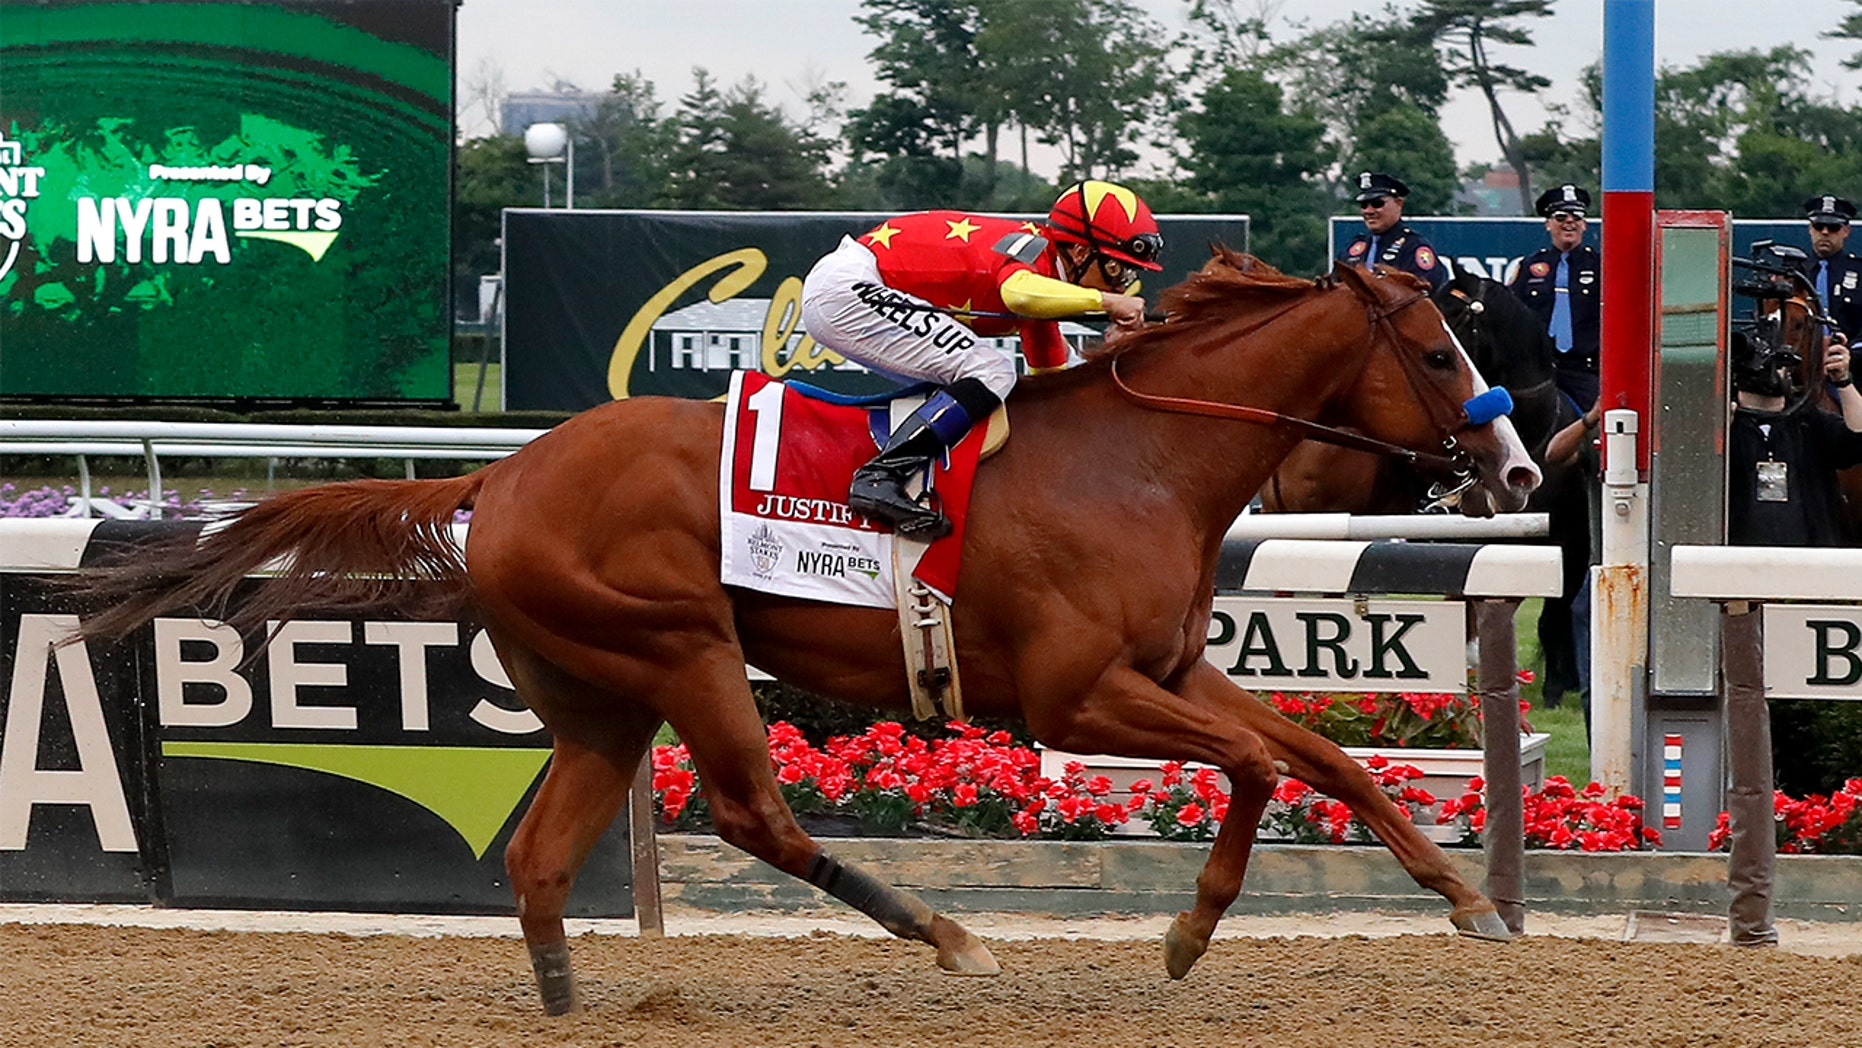 Justify (1), with jockey Mike Smith, crosses the finish line to win the 150th running of the Belmont Stakes horse race, Saturday, June 9, 2018, in Elmont, N.Y.